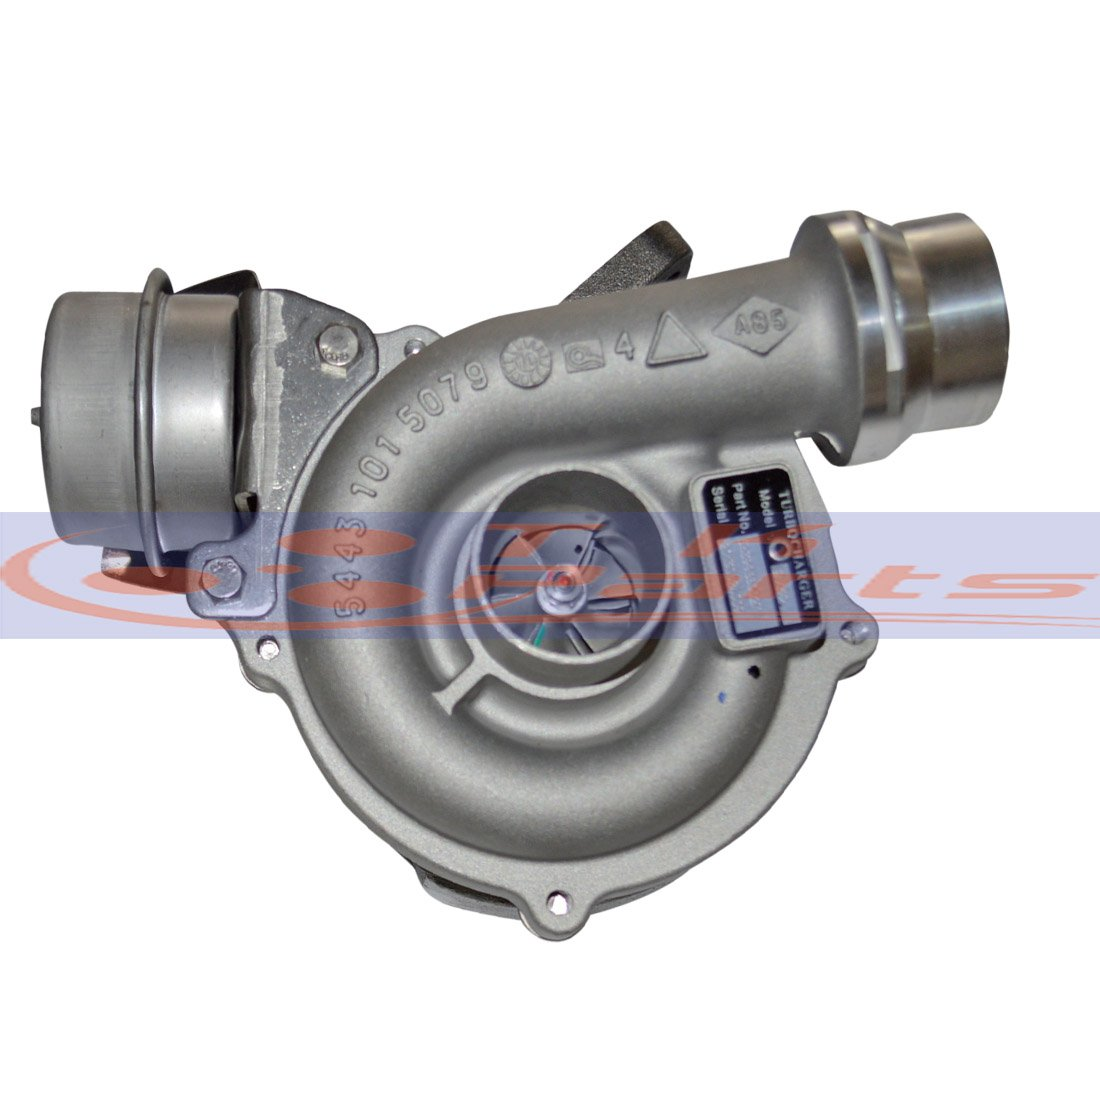 Amazon.com: TKParts New KP39 BV39 54399880027 54399700027 Turbo Charger For Renault Kangoo 2;Megane II;Scenic II;Modus K9K-THP 1.5L 103HP: Automotive